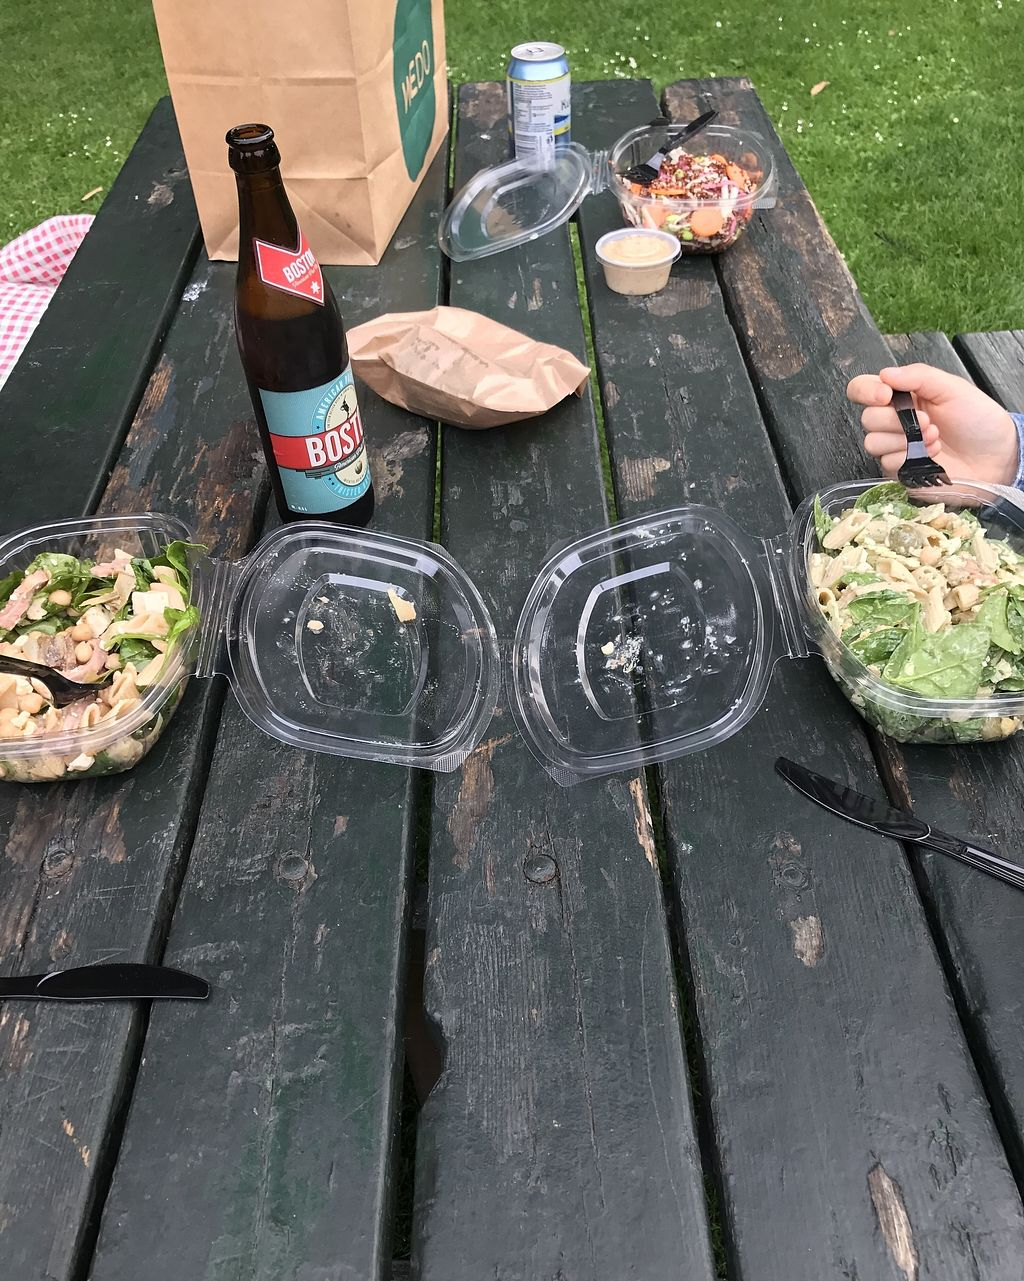 """Photo of Wedofood  by <a href=""""/members/profile/AmalieNygaard"""">AmalieNygaard</a> <br/>3 self mixed salads <br/> July 27, 2017  - <a href='/contact/abuse/image/97230/285408'>Report</a>"""